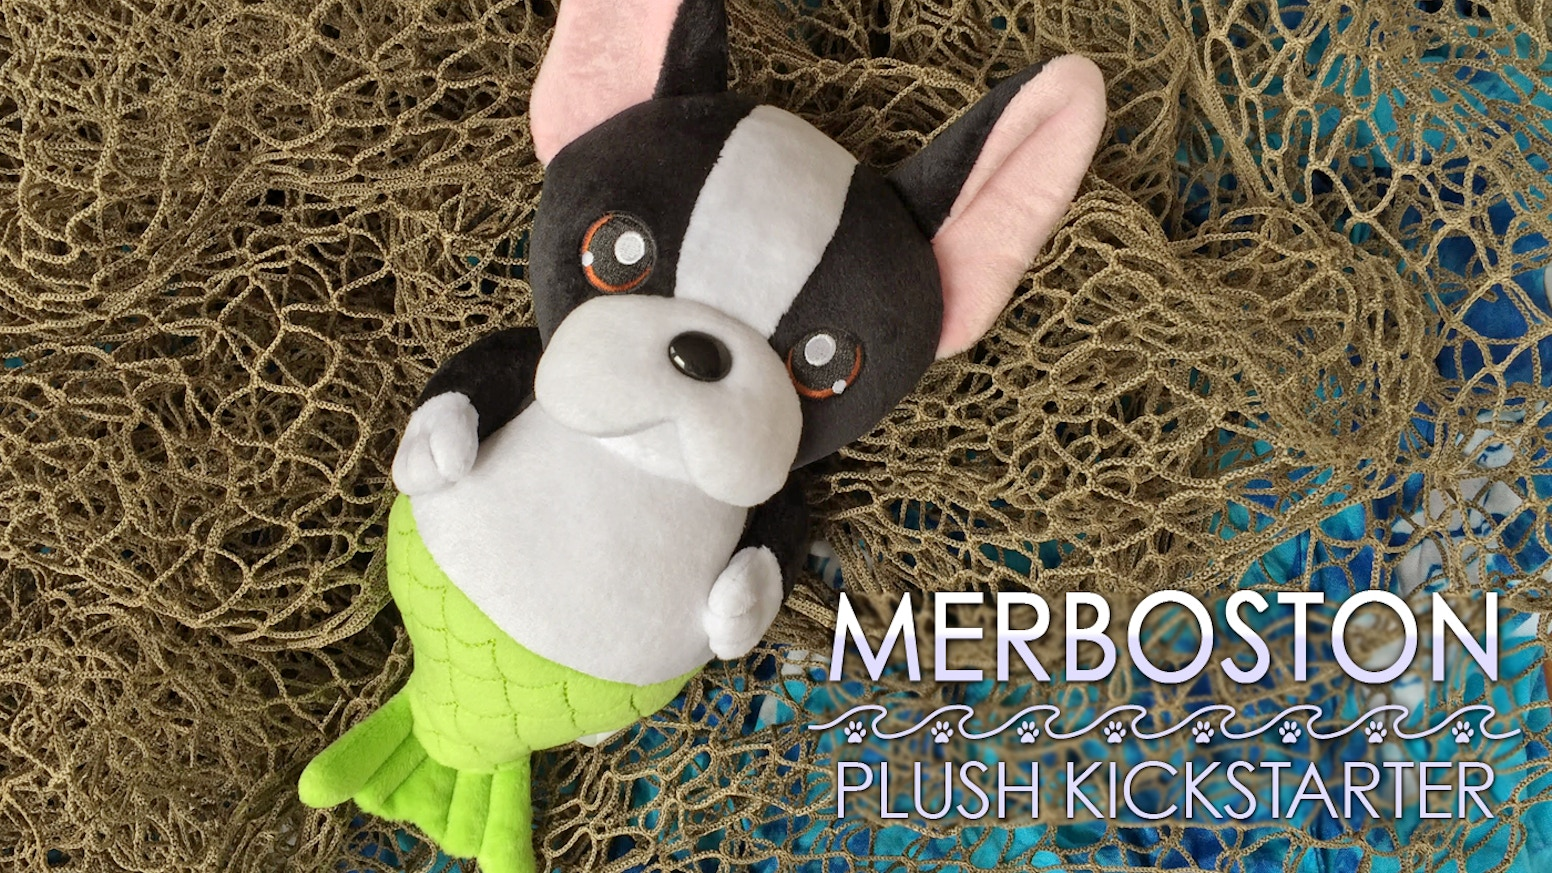 Merboston is an energetic, goofy merdog who is sure to make you smile. Help bring this plush to life by adopting a Merboston!